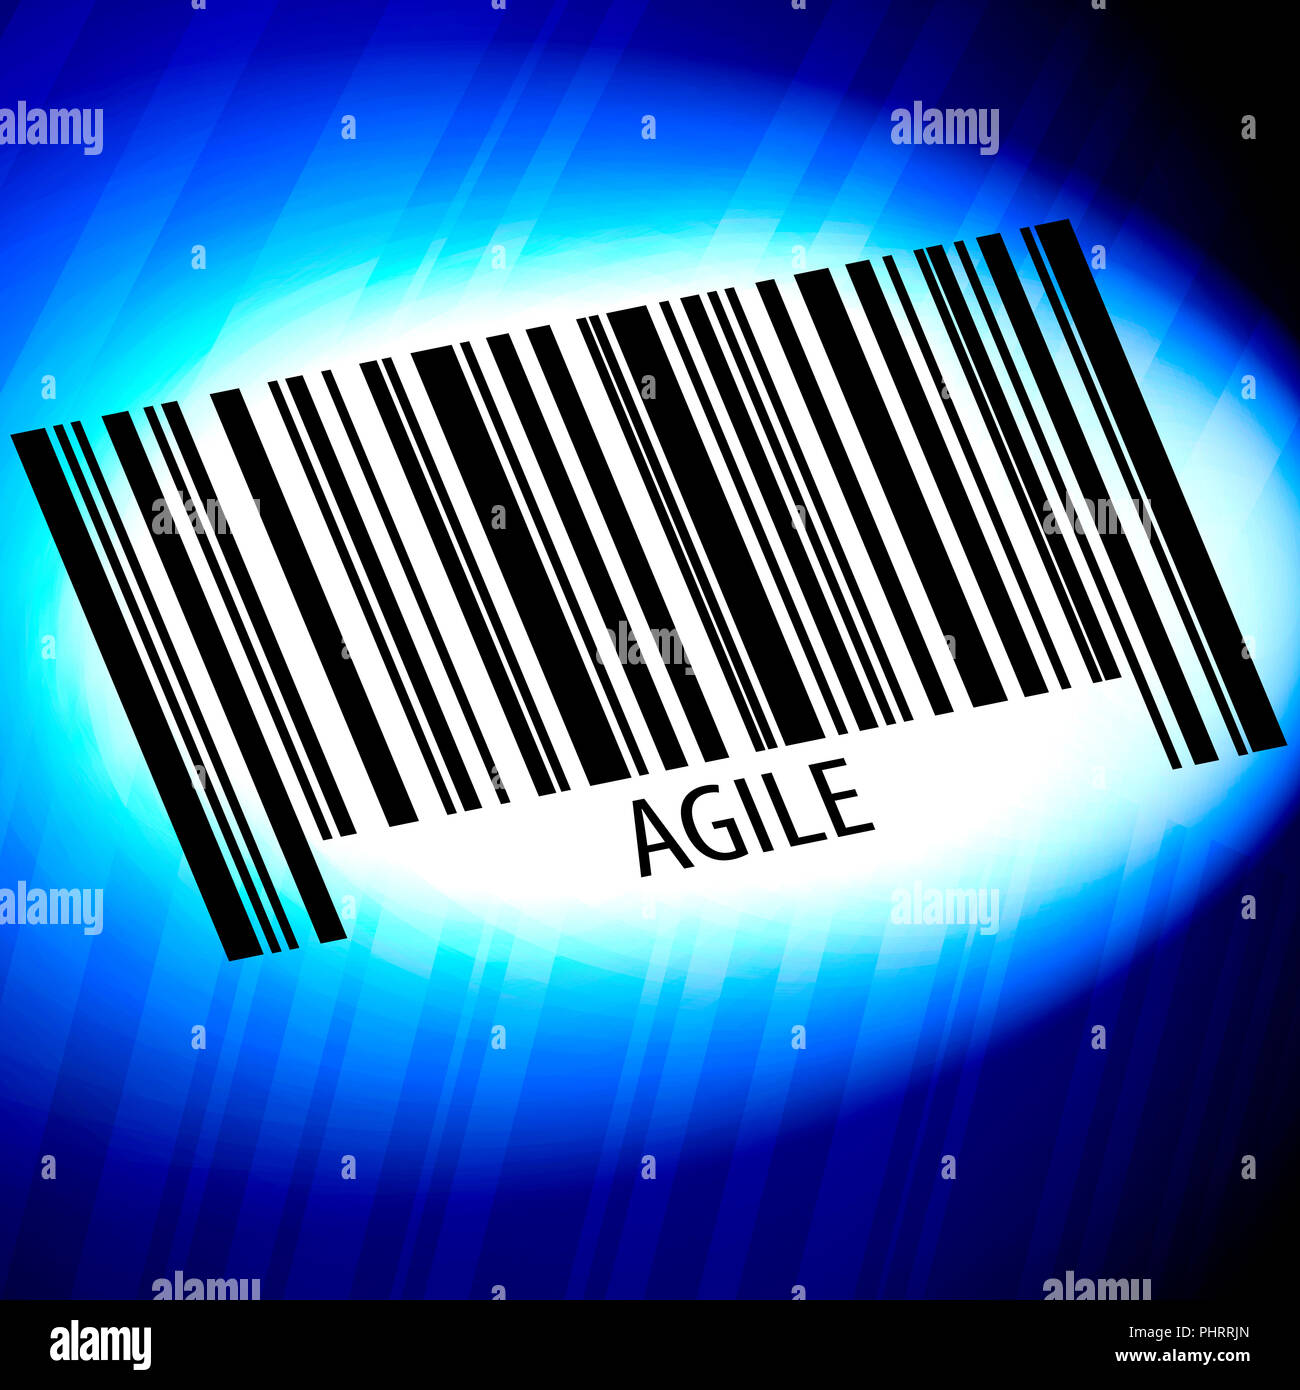 Agile - barcode with blue Background - Stock Image